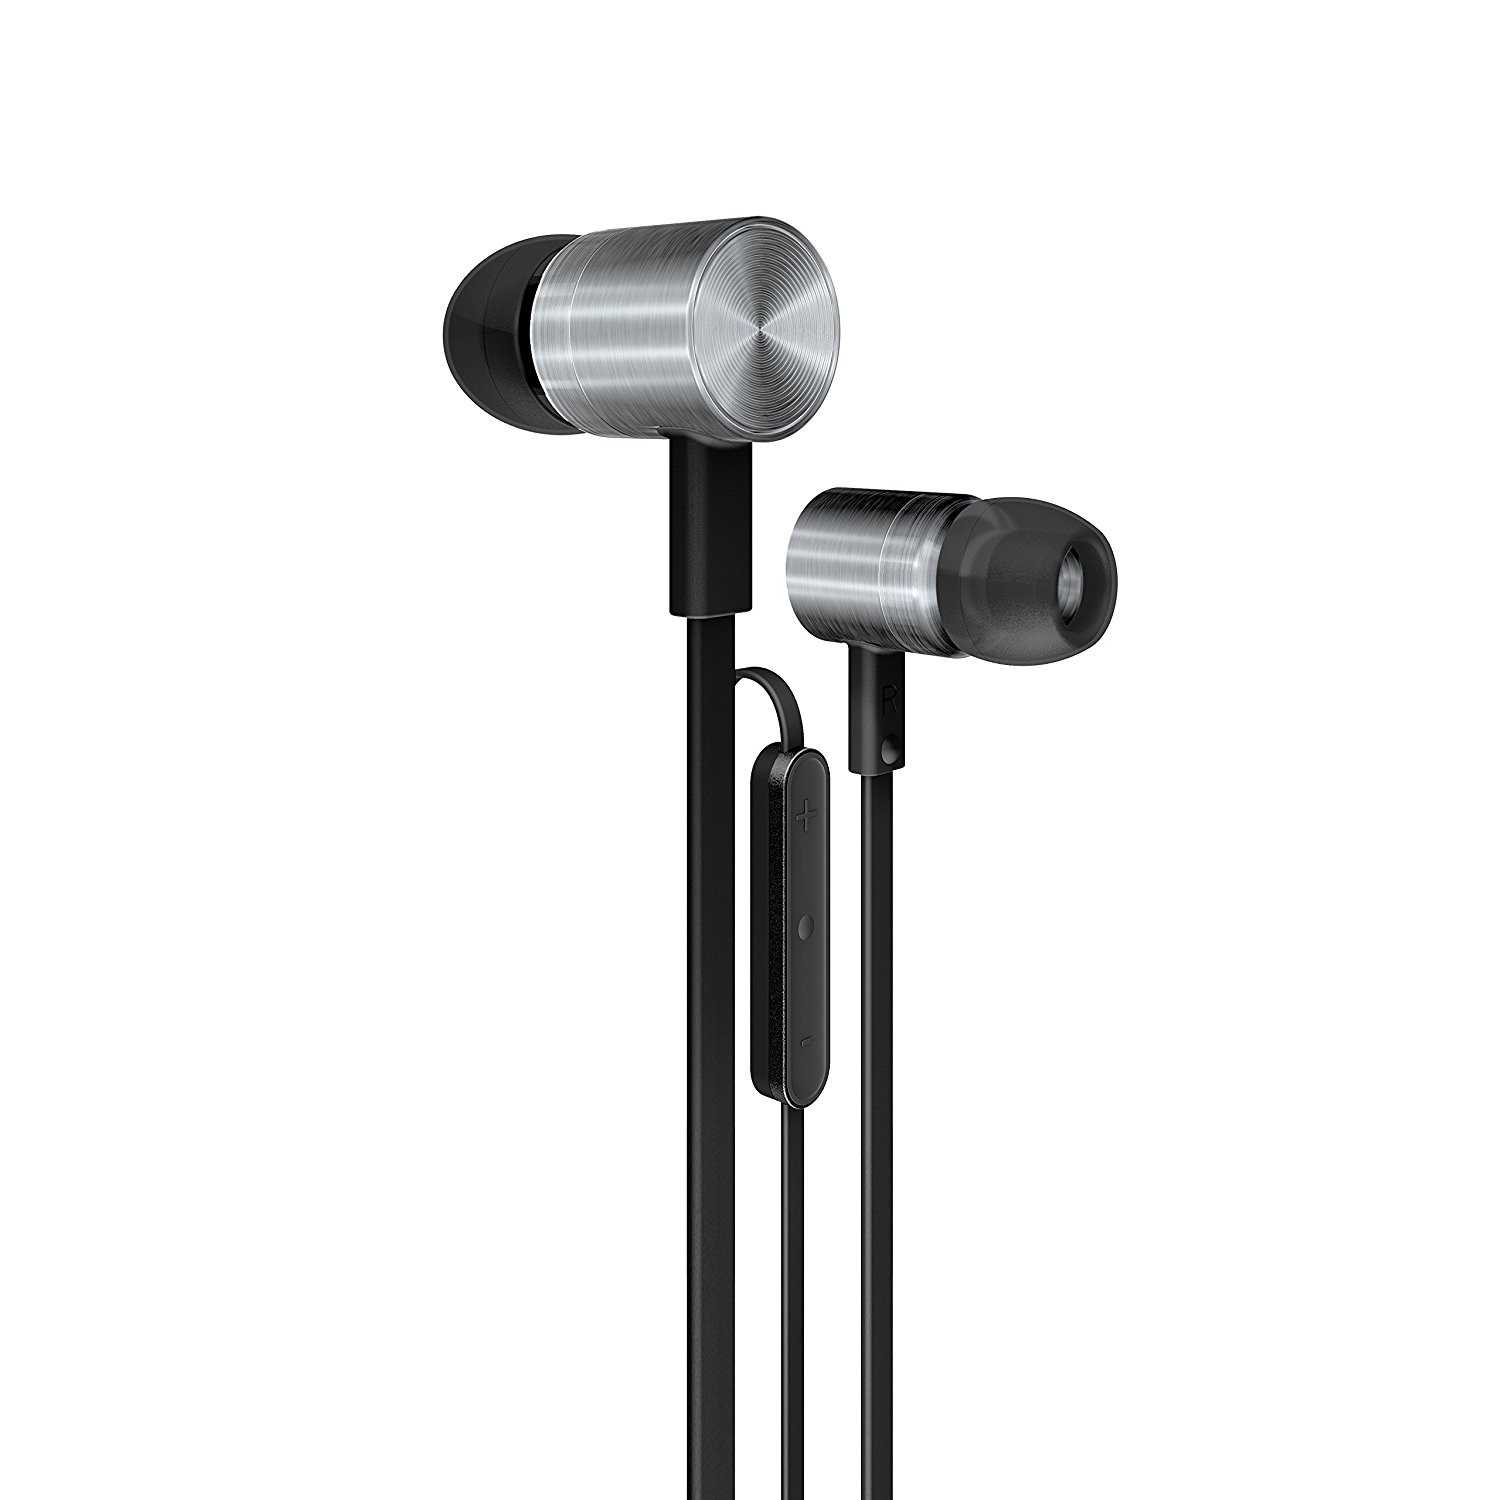 Beyerdynamic Idx 200 Ie Wired Headphone Price 18 Oct 2018 Dtx 350m Iereviews And Specifications